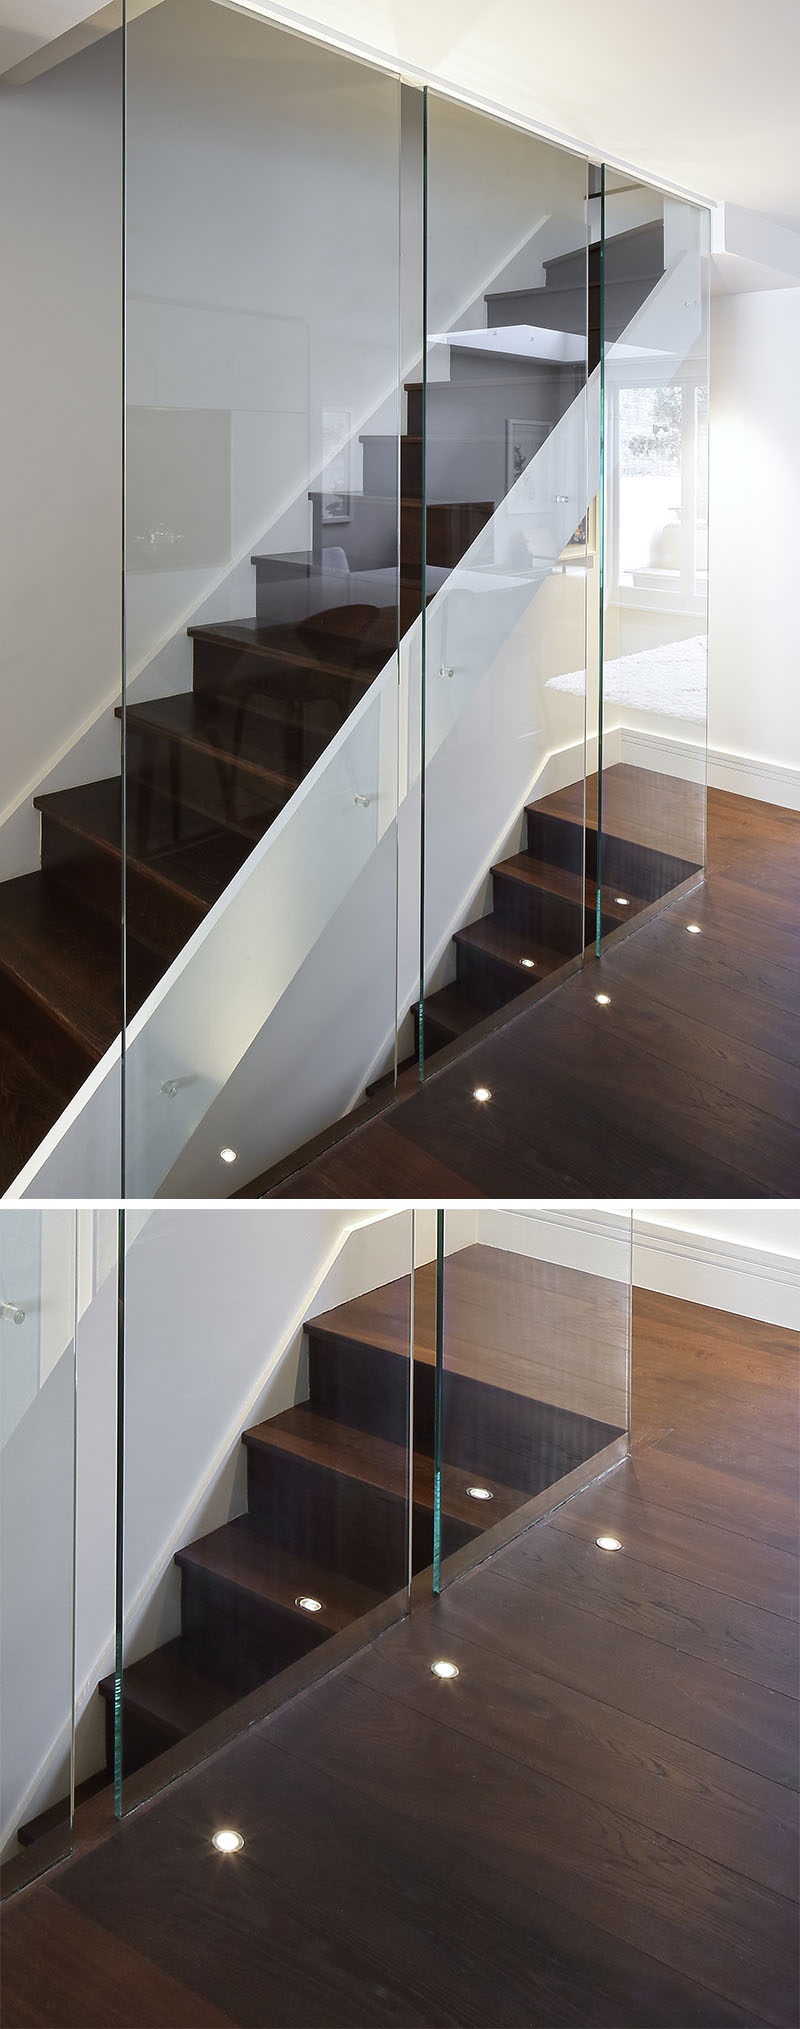 7 Interiors That Use Dramatic Uplighting To Brighten A Space // Small lights built in to the floor of this home brighten the dark wood floor and contribute to the modern feel of the staircase.